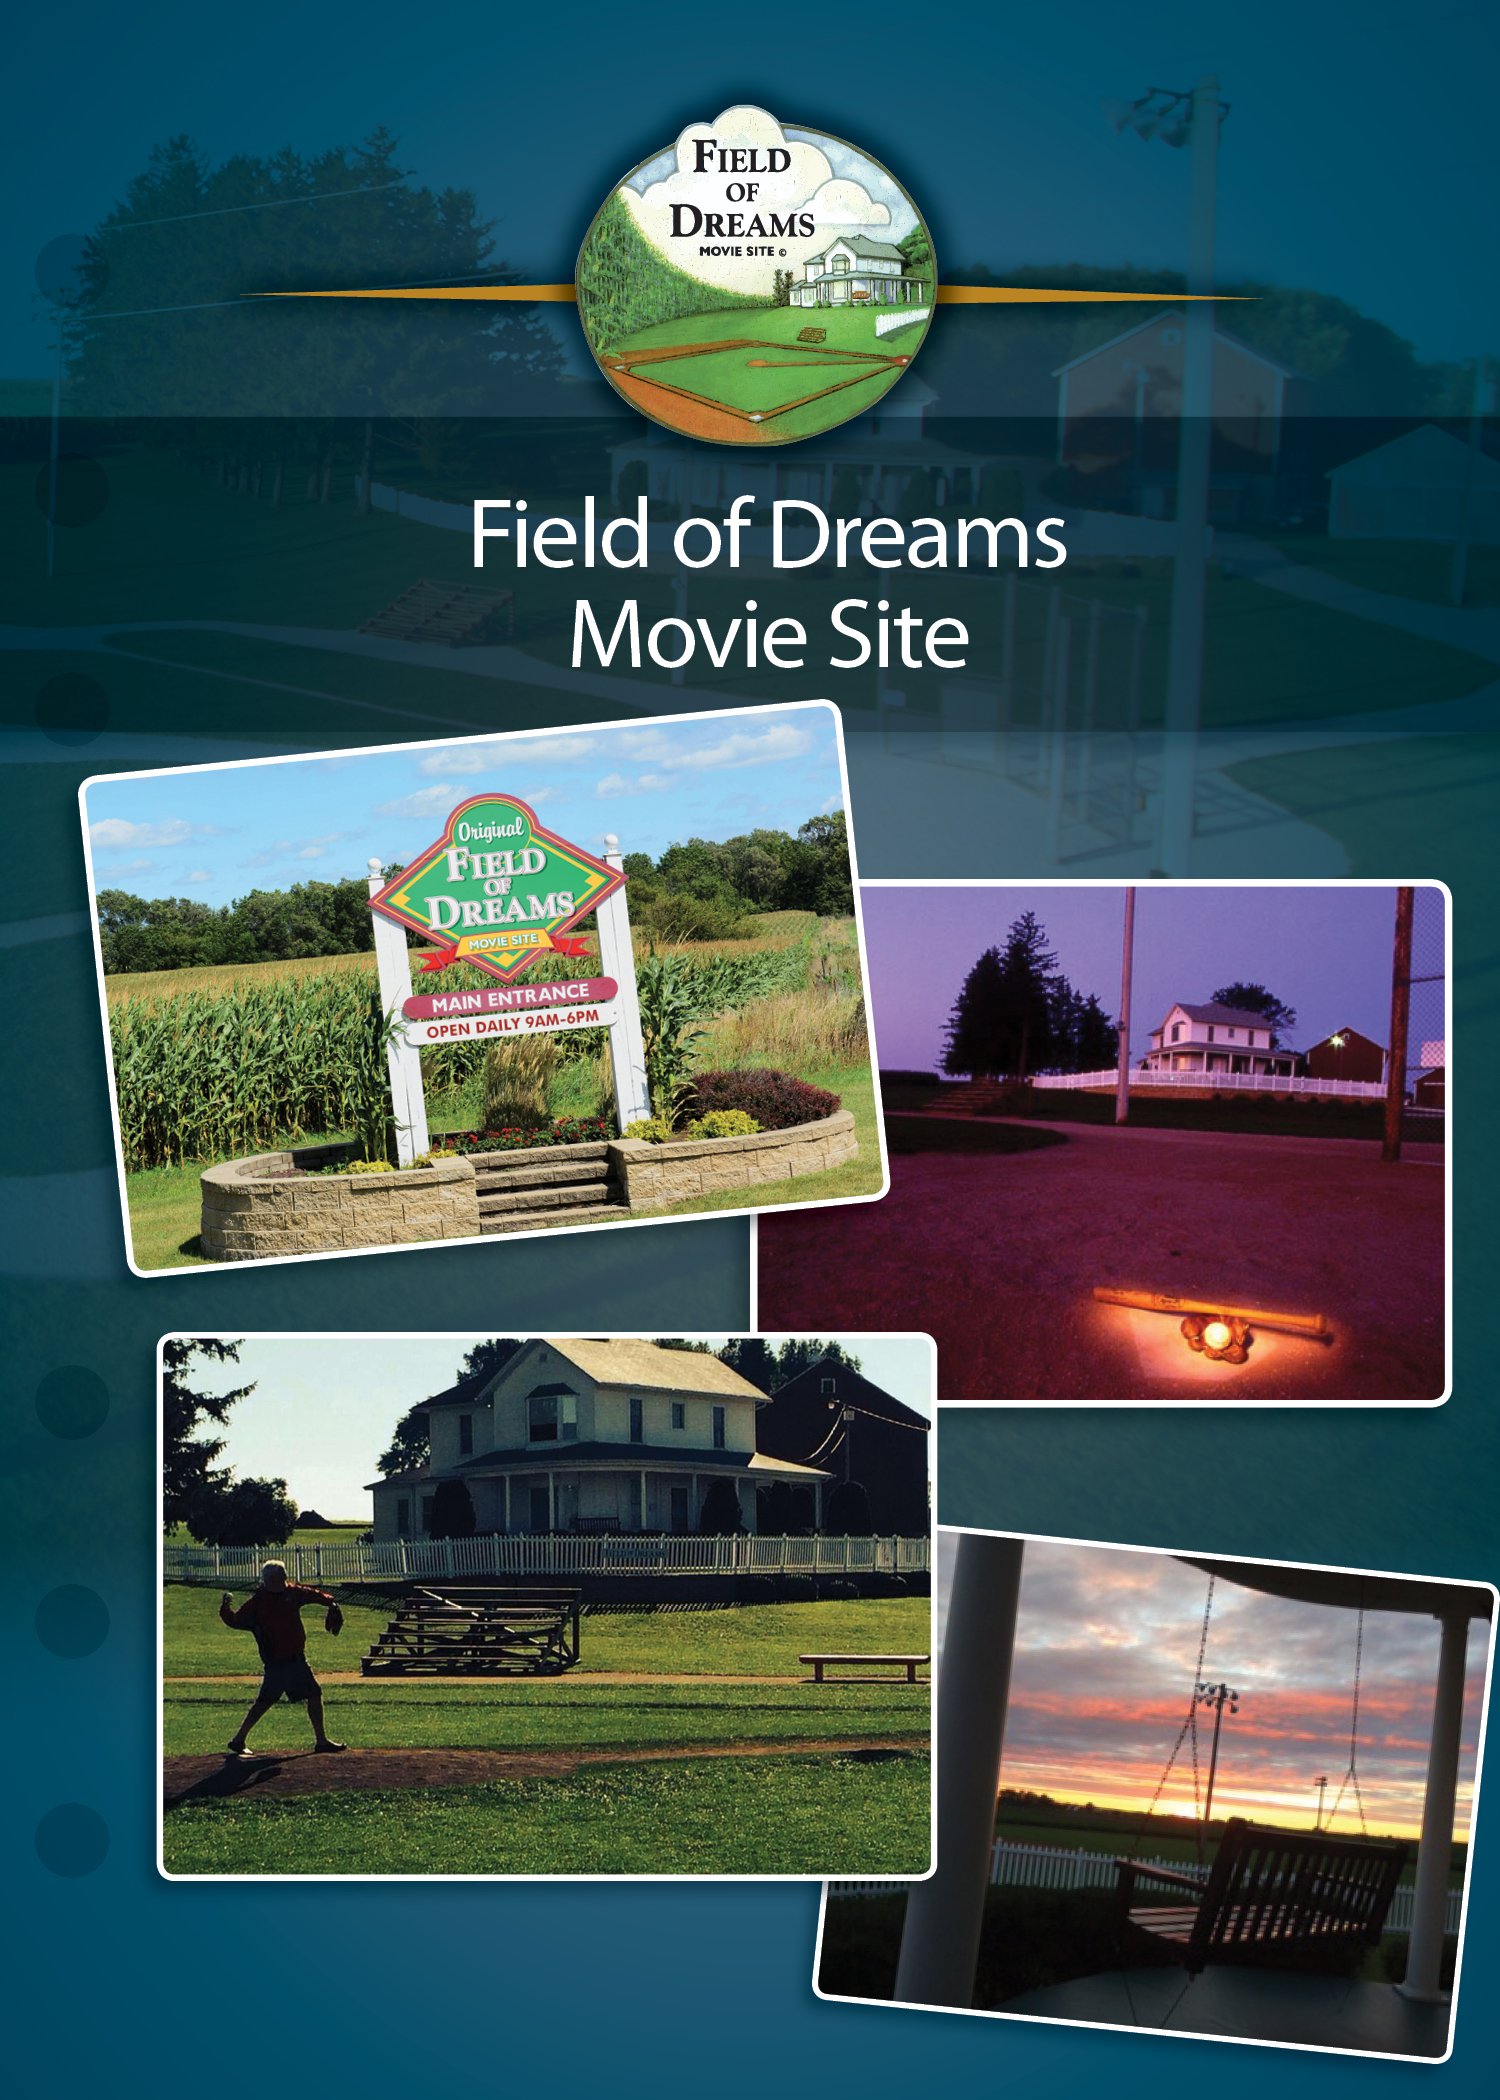 Mlb Ballpark Pass Port Field Of Dreams Movie Site